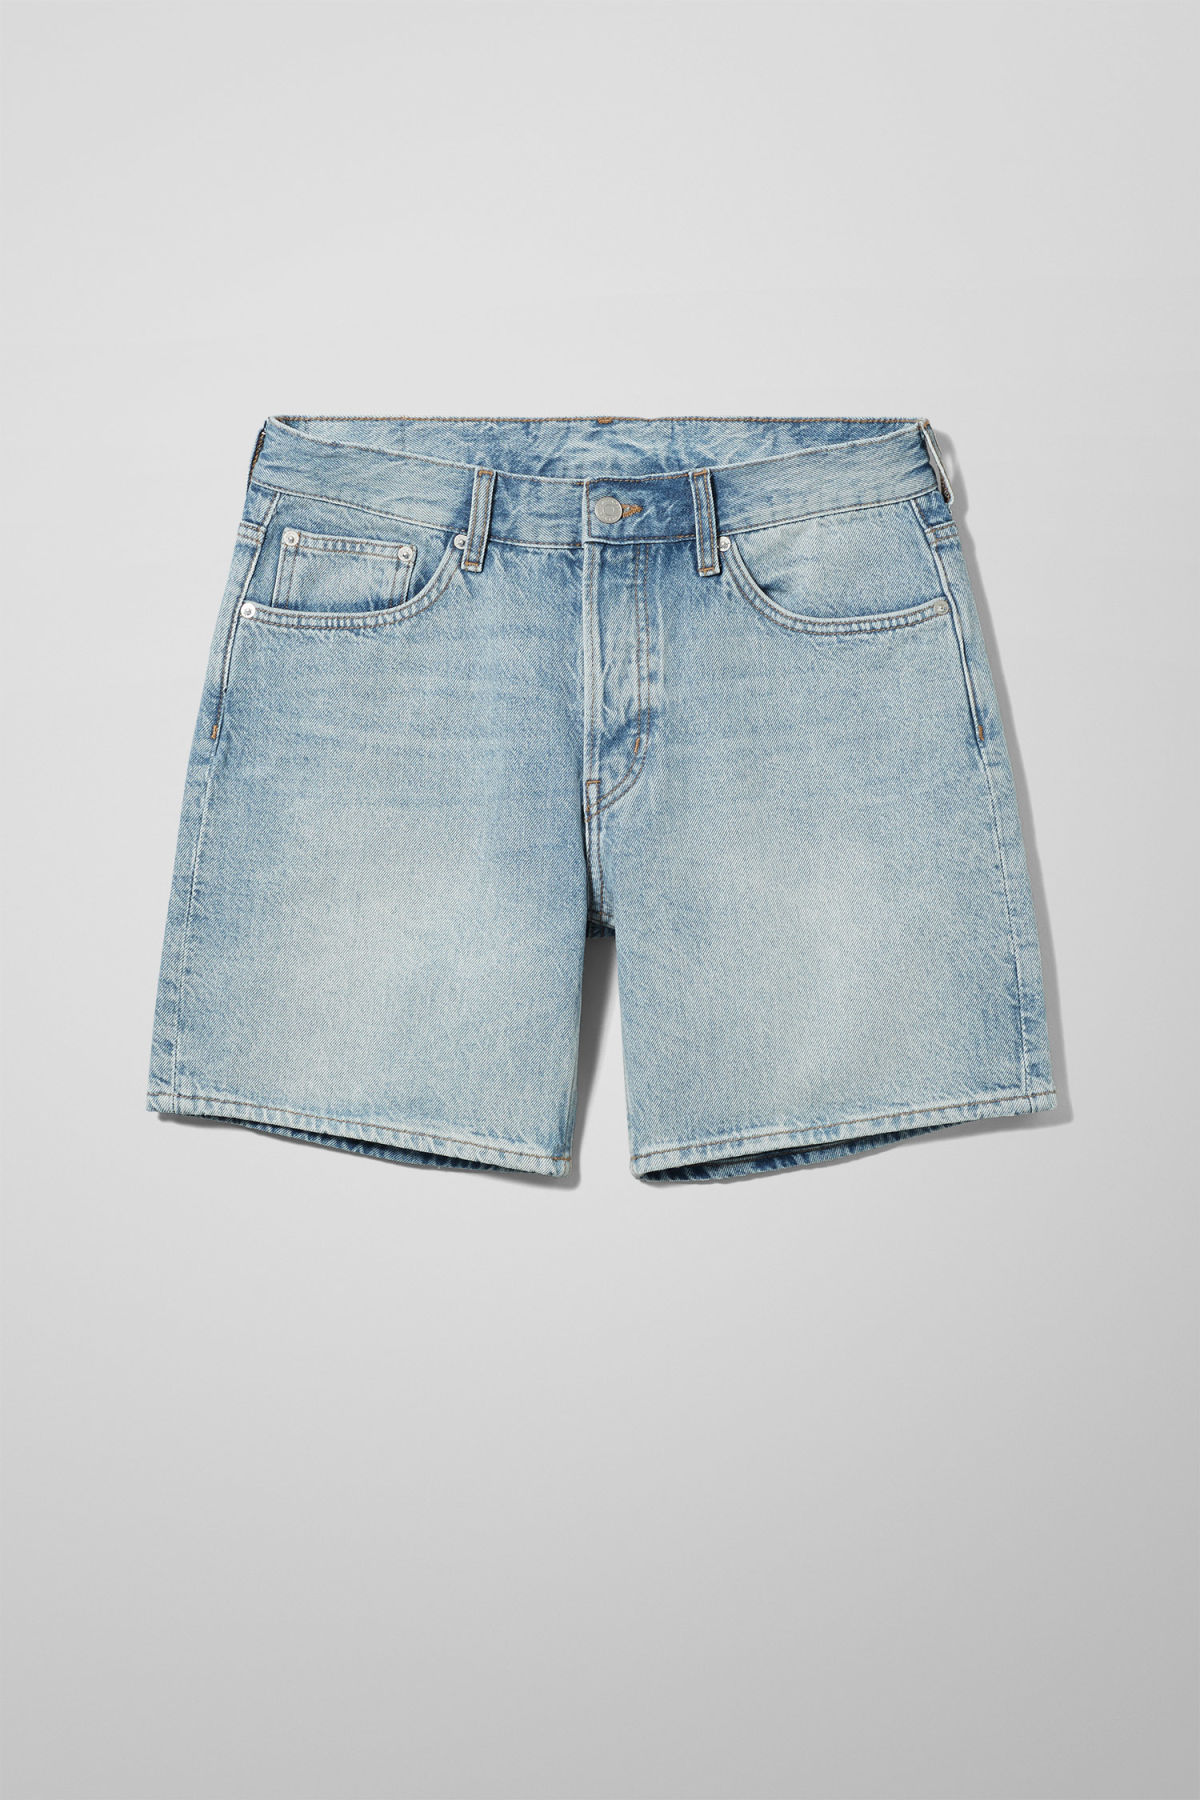 Vacant Spring Blue Shorts - Blue